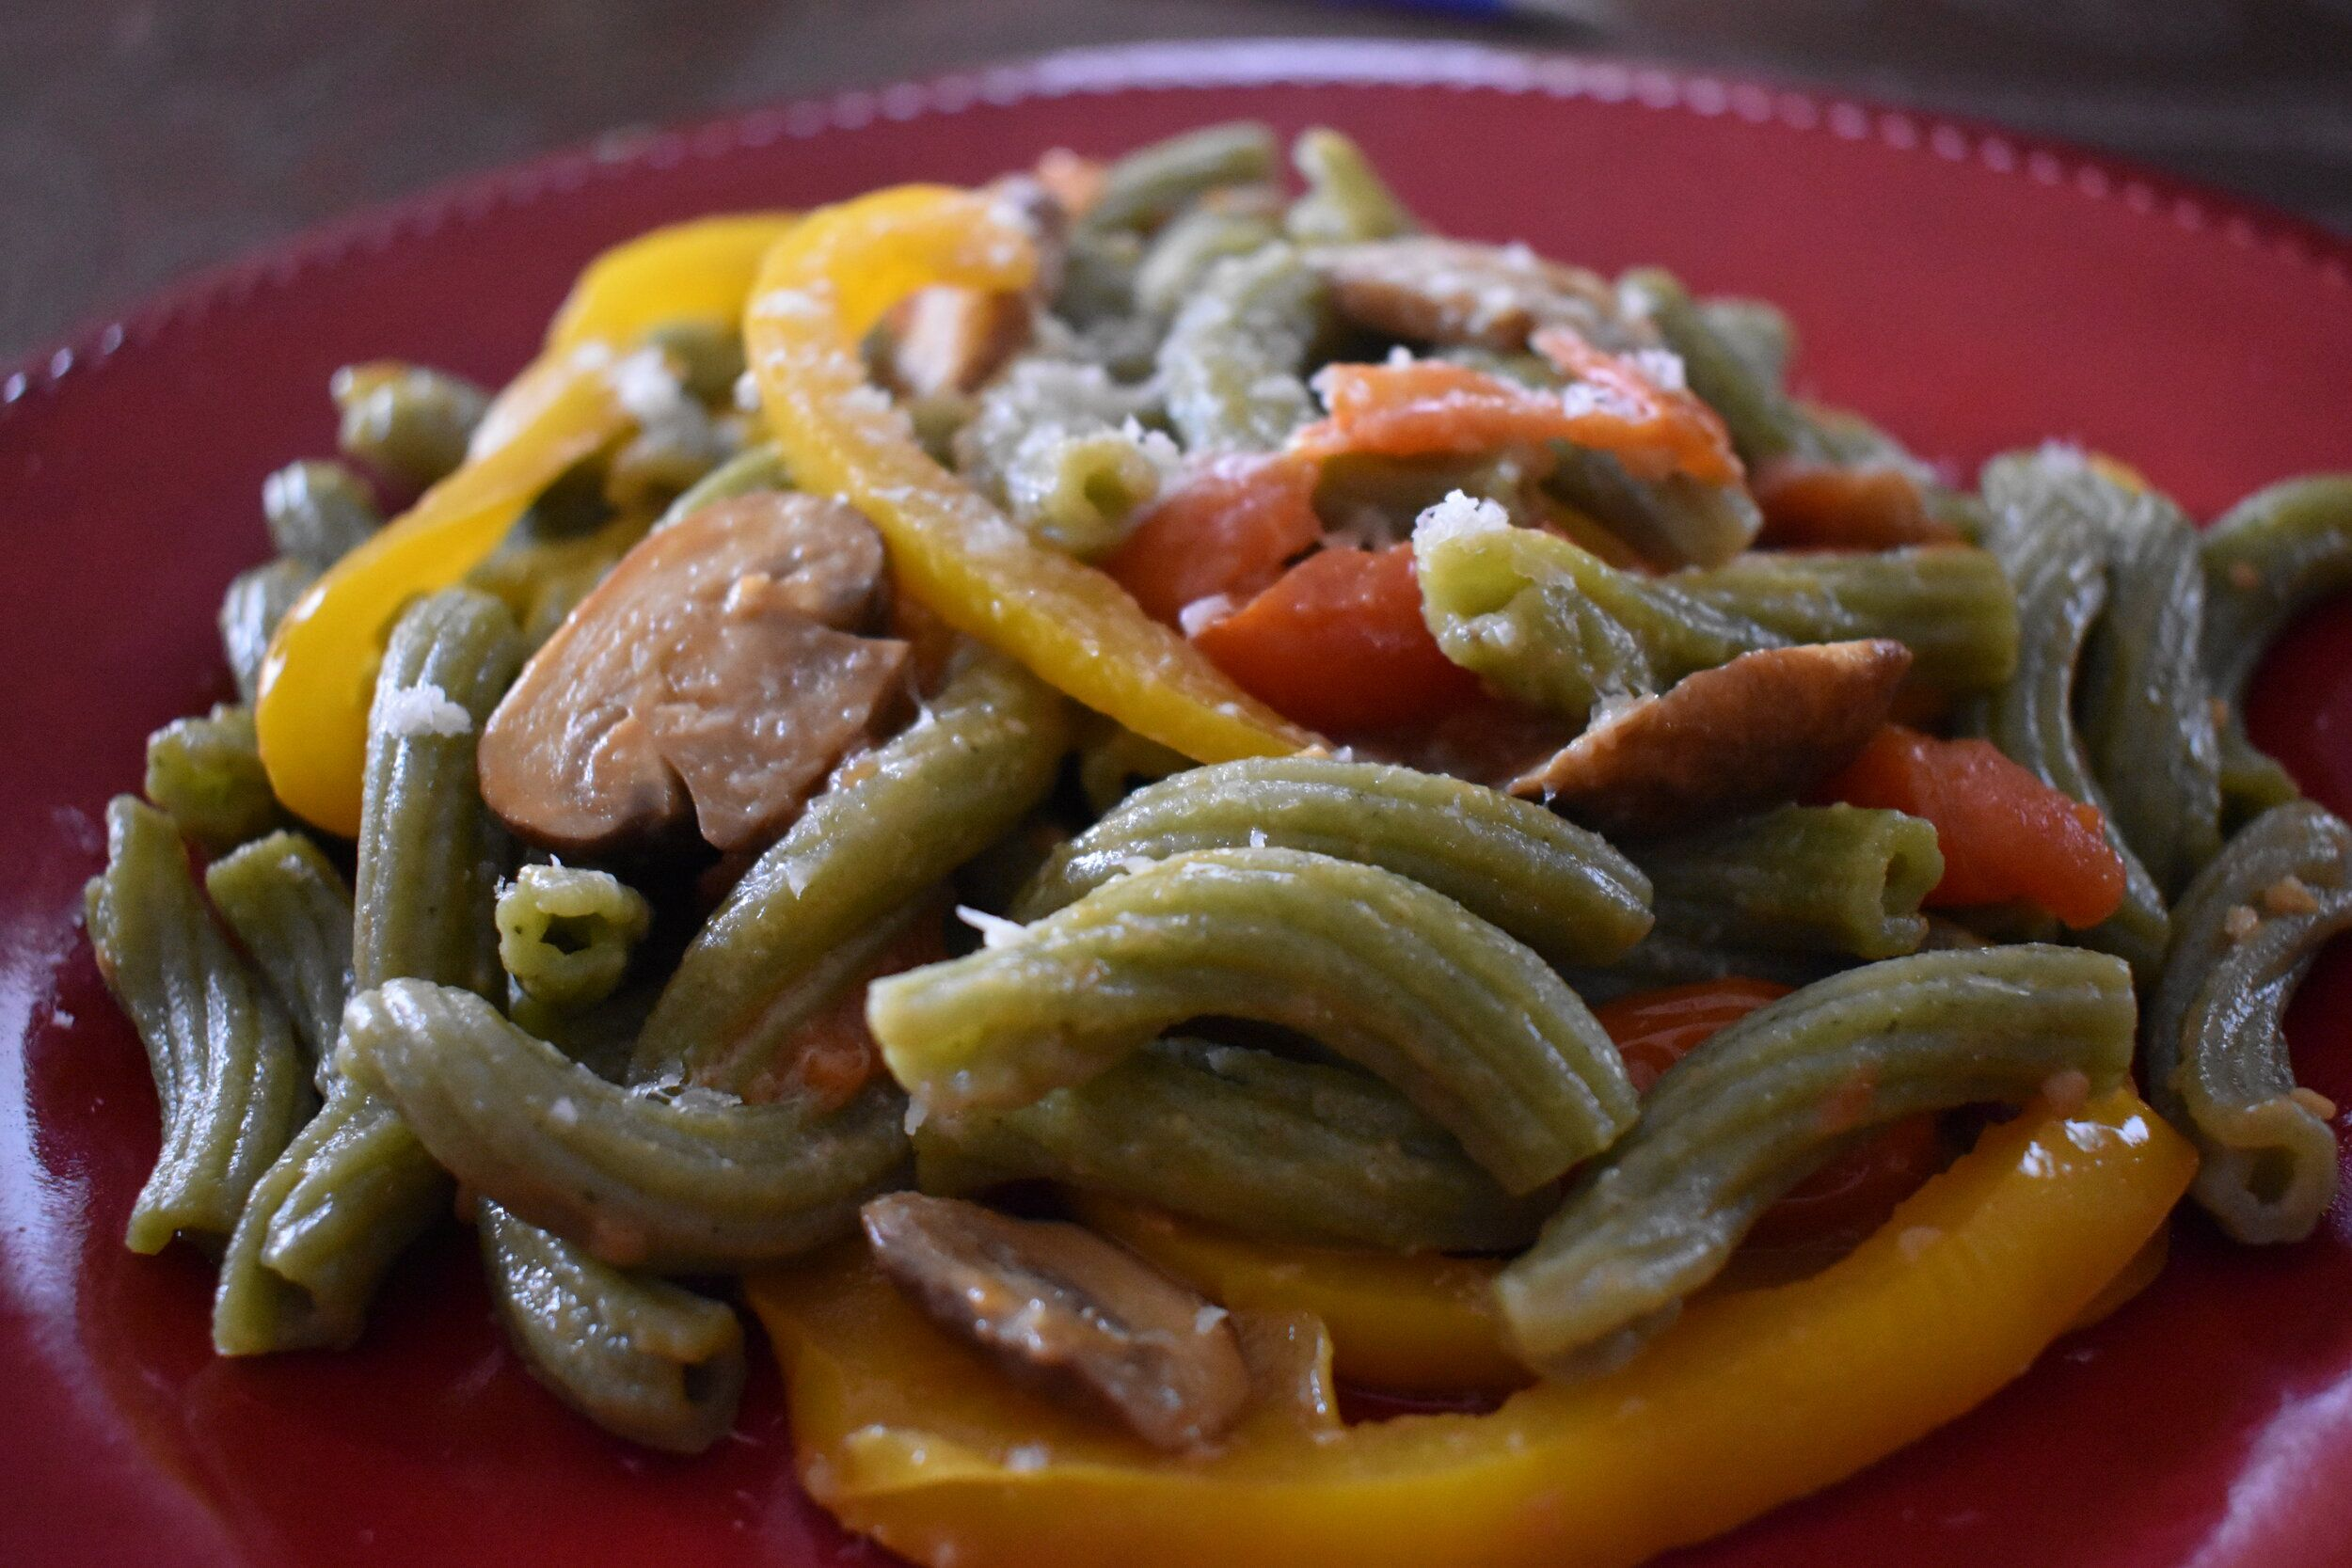 Vegetable Sauté with Garlic, White Wine, & Olive Oil